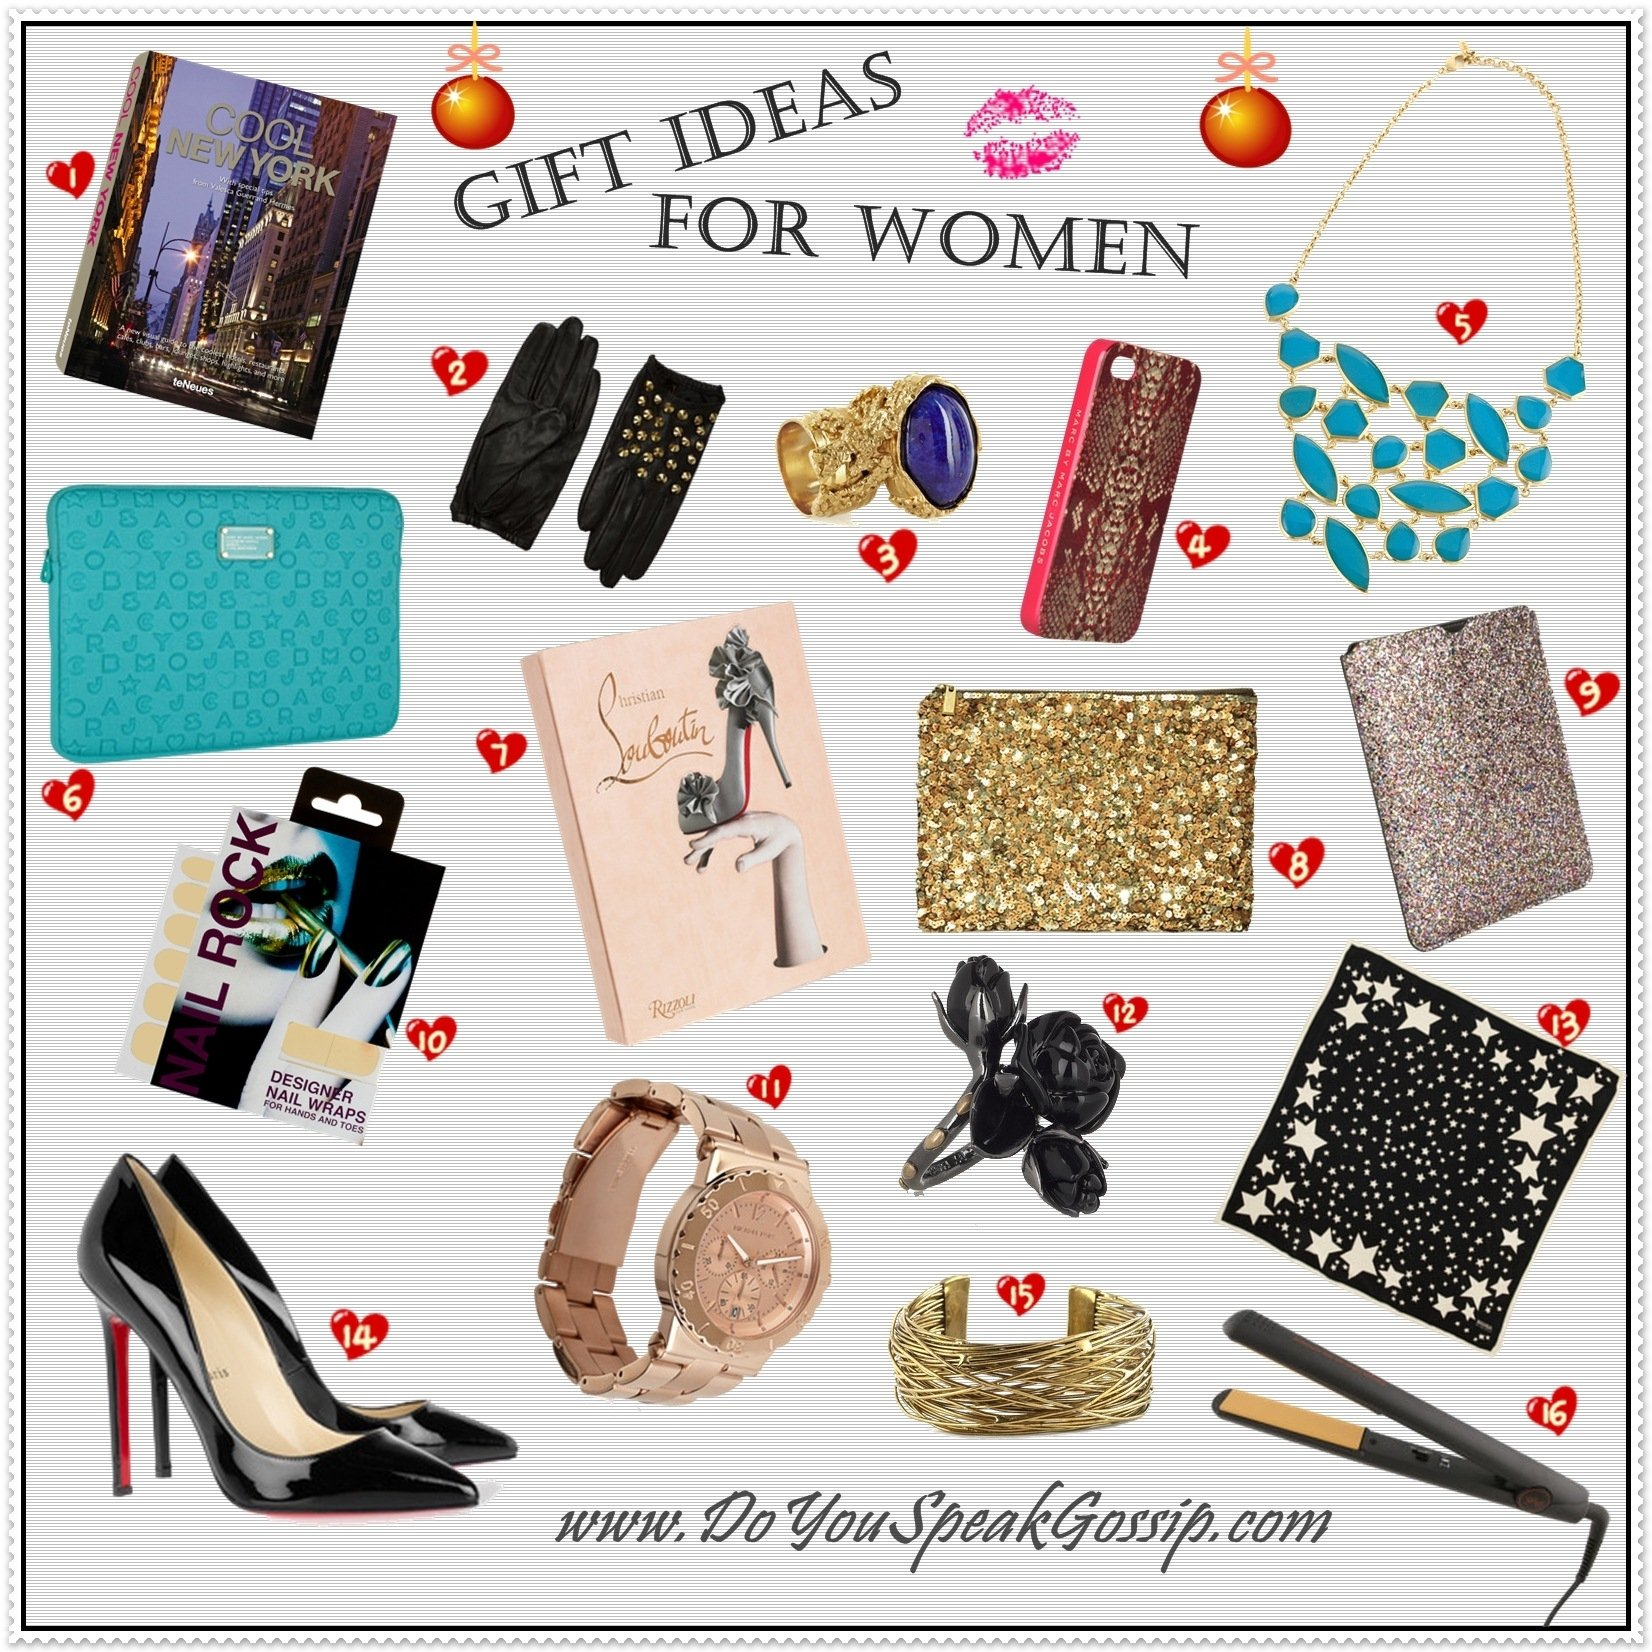 10 Lovely Gift Ideas For Women Birthday gift ideas for women do you speak gossipdo you speak gossip 4 2020